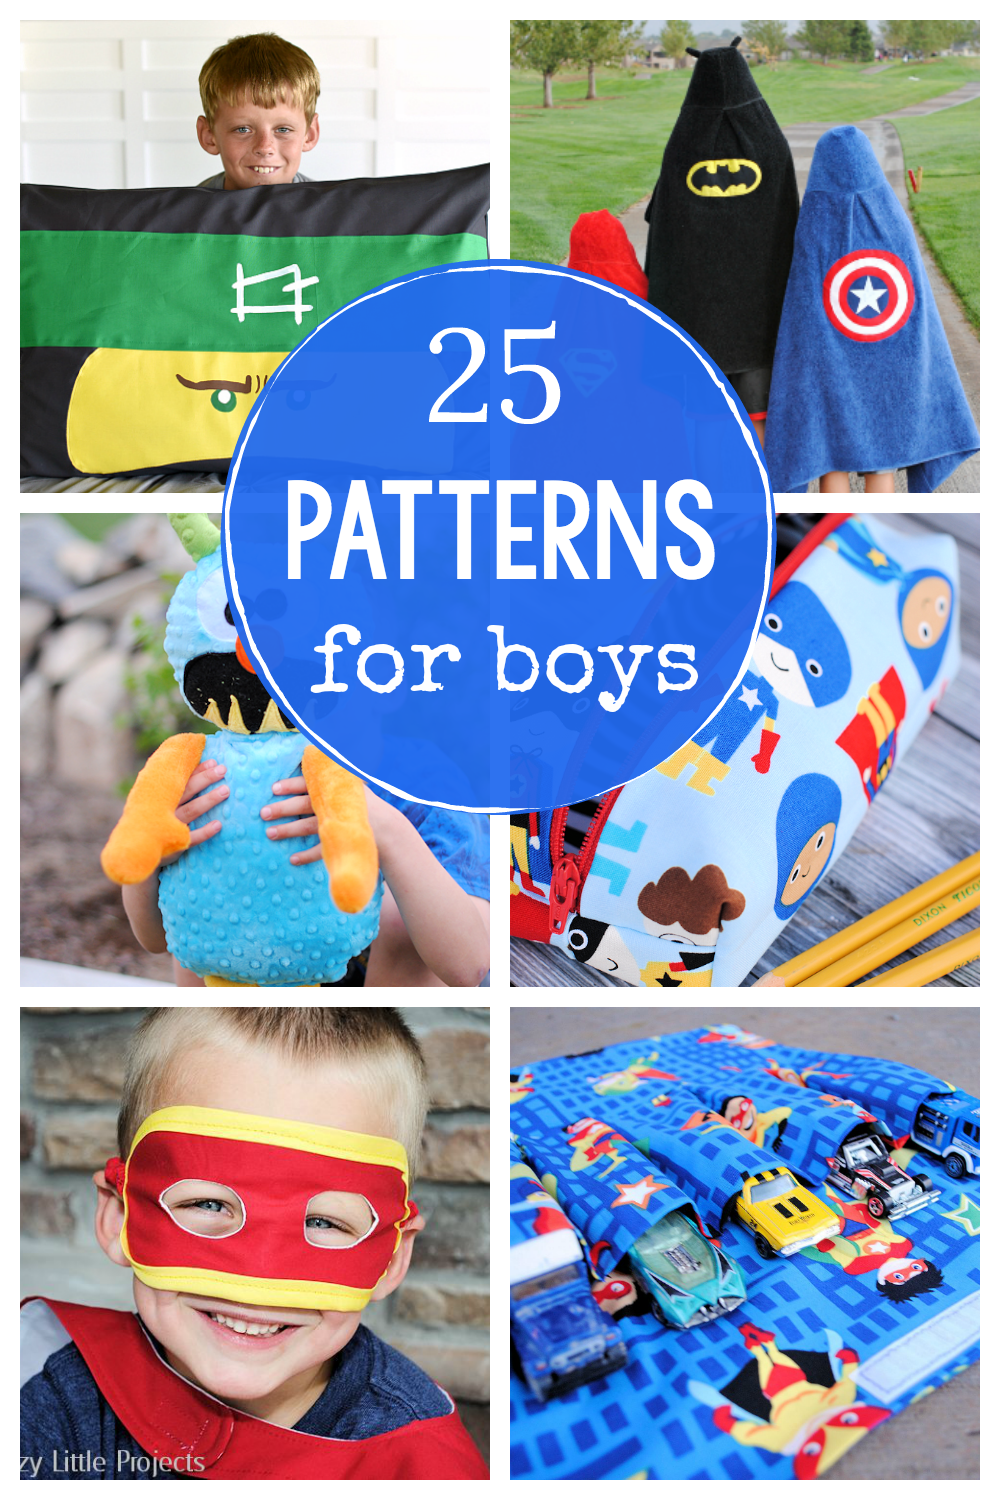 Free Sewing Patterns for Boys-These are fun things to sew for little boys like superheroes and ninjas, capes and masks! Your kids will love these great sewing patterns for boys. #sew #sewing #pattern